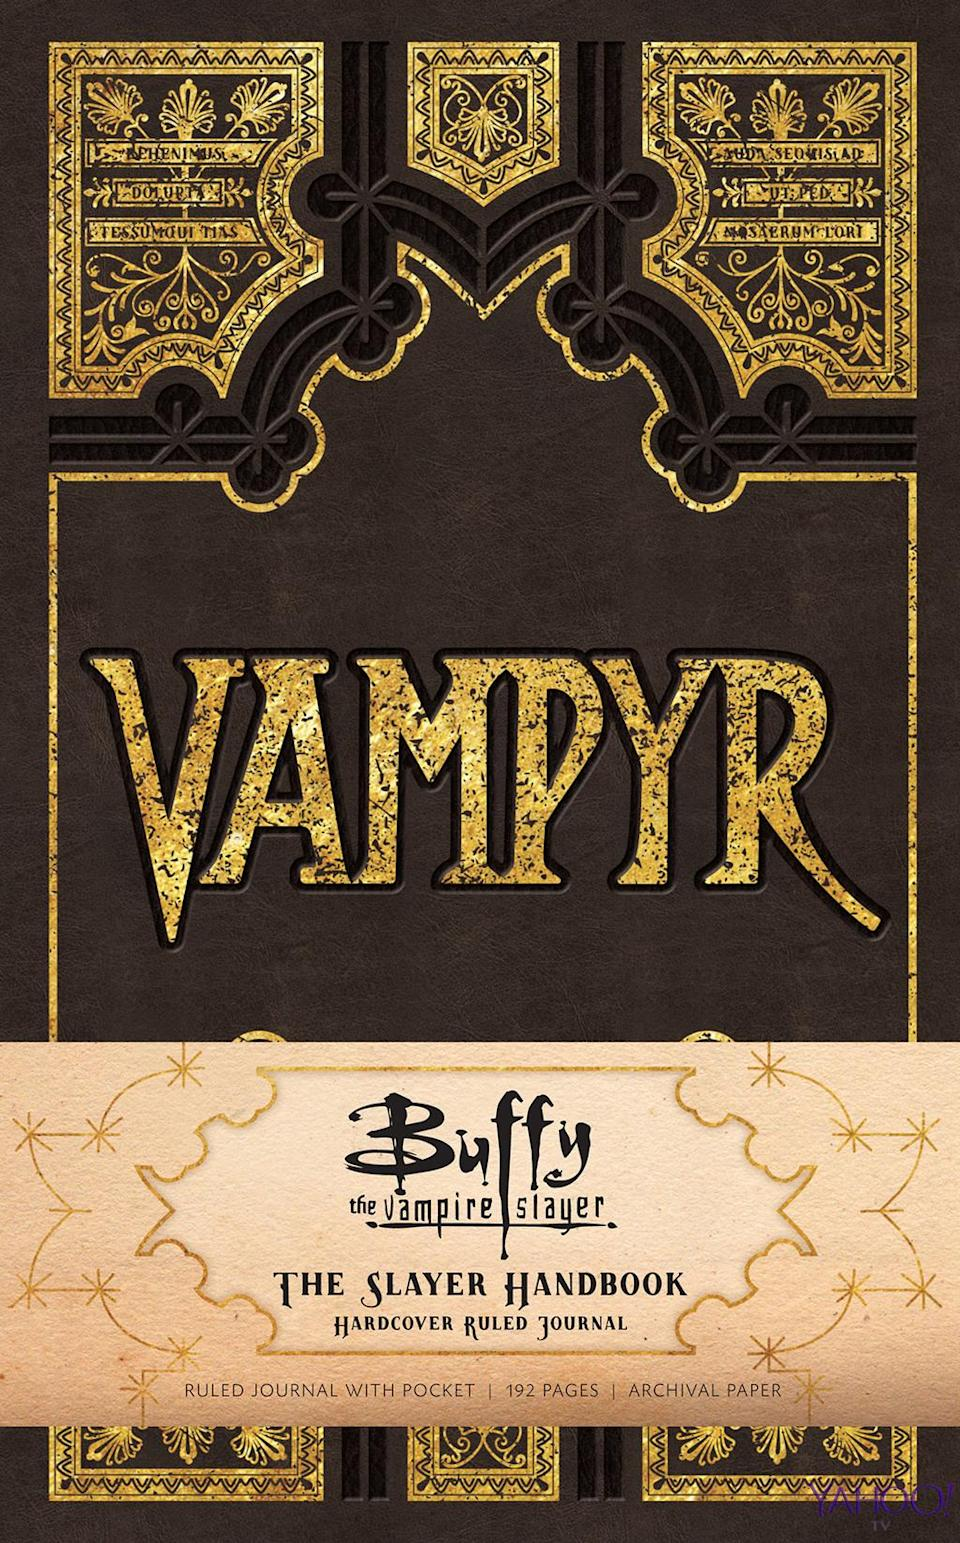 """<p>Also available in August from Insight Editions, this journal, which """"includes a section of text adapted from the original <em>Slayer Handbook</em> before giving way to blank ruled pages."""" So maybe it's time to write fan fiction again? Price: $18.95. Other Insight Editions offerings will include the <em>Buffy the Vampire Slayer Vampyr Stationery Set</em> (August, $24.99) — complete with Hellmouth sticker seals — as well <em>Buffy the Vampire Slayer: The Official Grimoire</em> (October, $35), """"the first and only truly comprehensive collection of every magical moment from all seven seasons,"""" and <em>Buffy the Vampire Slayer: The Definitive Visual Handbook</em> (October, $14.99), a """"one-of-a-kind infographic guide to all things <em>Buffy</em>, blending striking illustrations with a bounty of facts and stats…"""" (Credit: Insight Editions) </p>"""